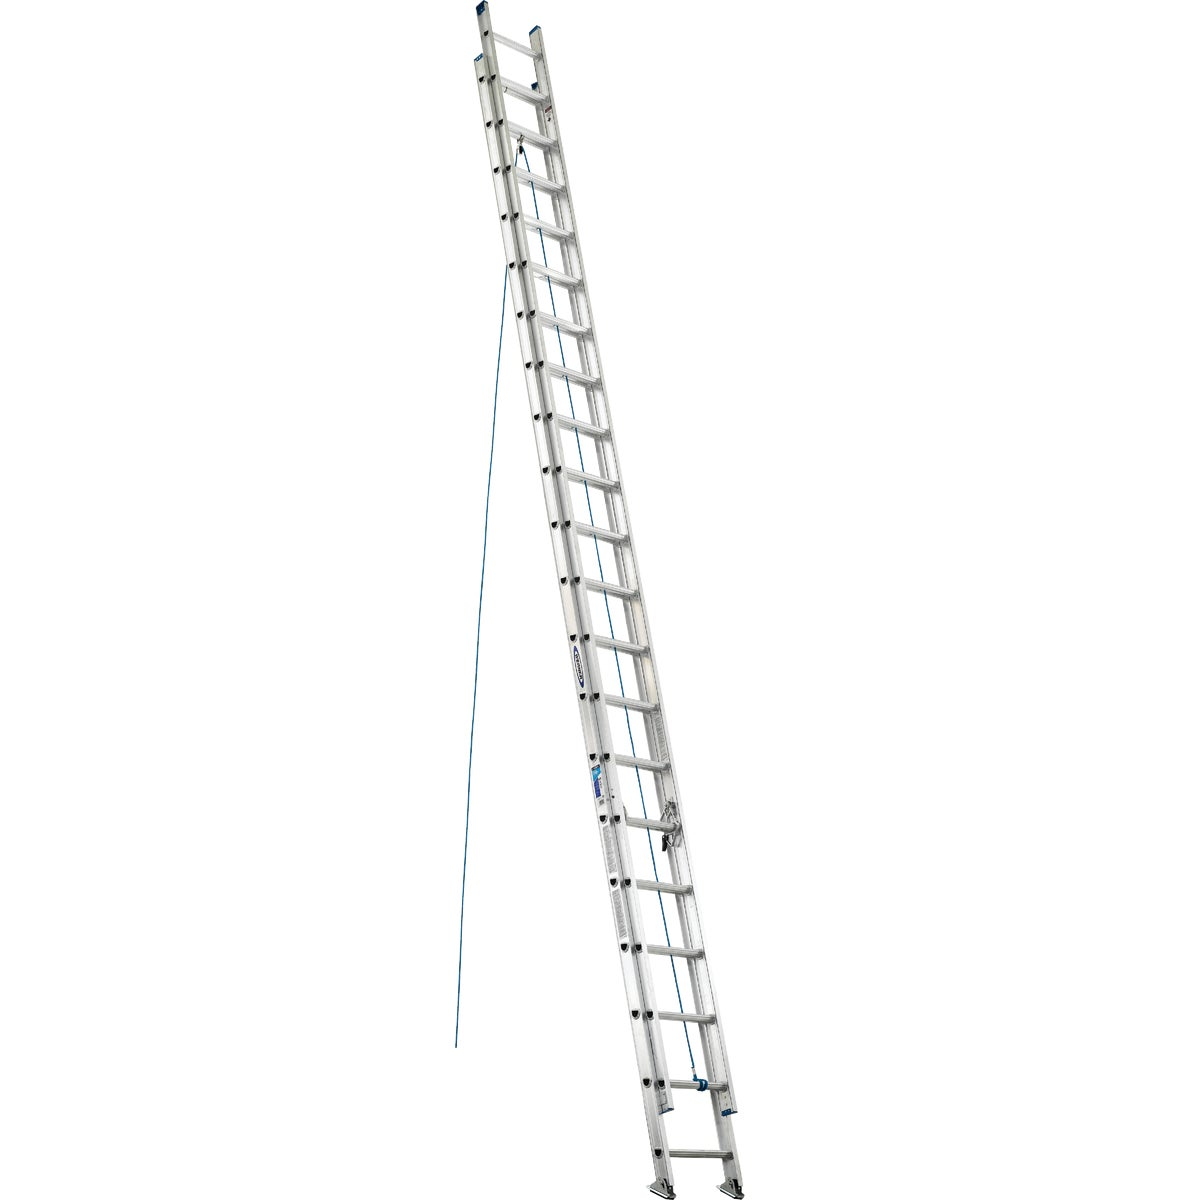 T-1 40' ALUM EXT LADDER - D1340-2 by Werner Ladder